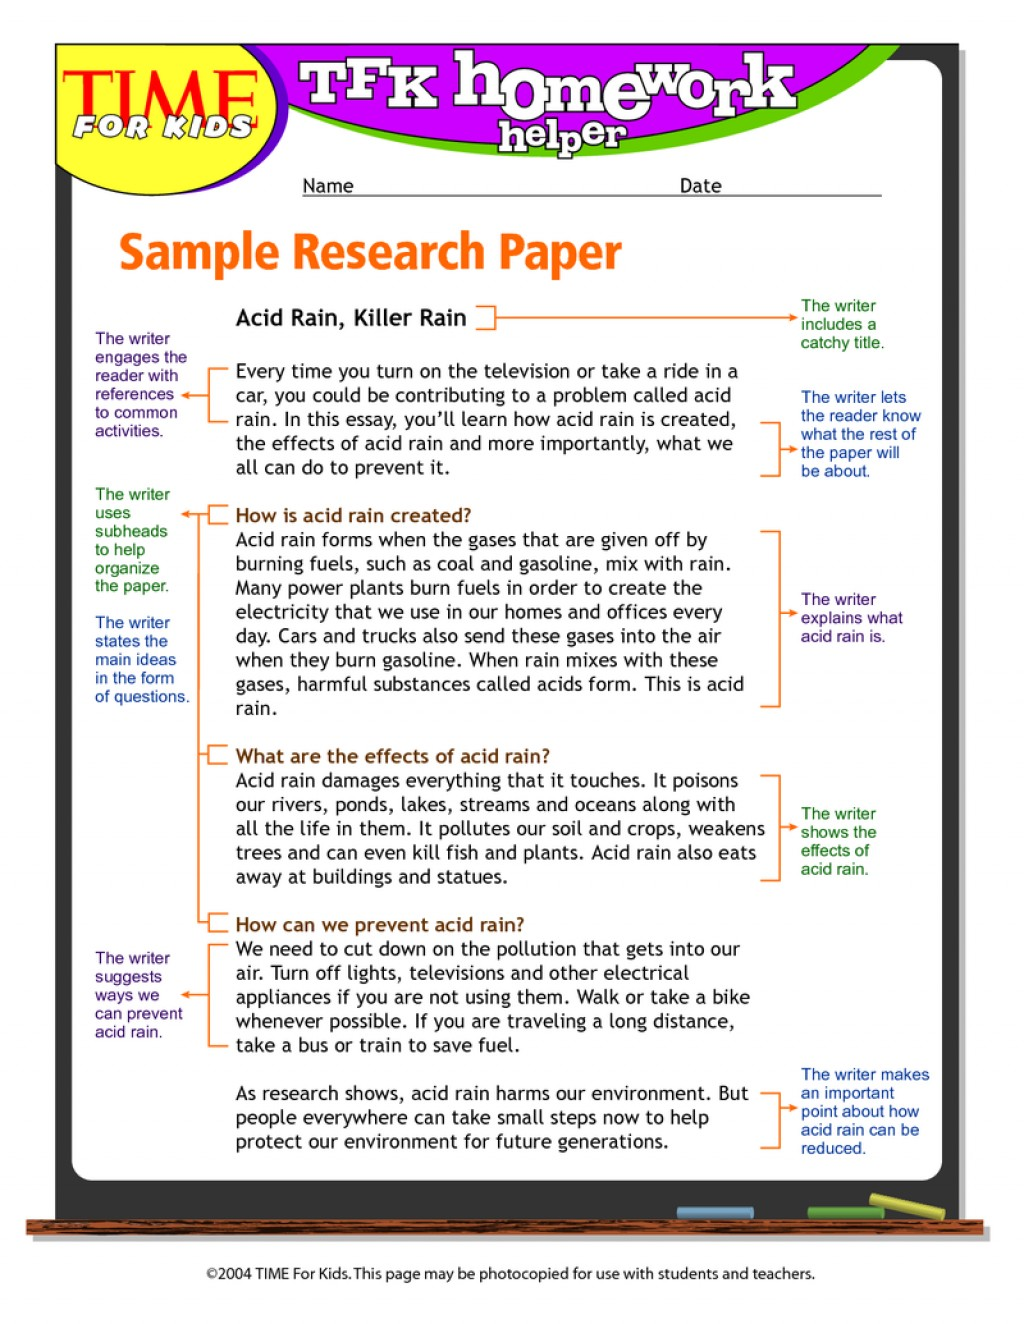 009 How To Do Research Top A Paper I Make Title Page Mla Write Psychology In Apa Format Cover Large